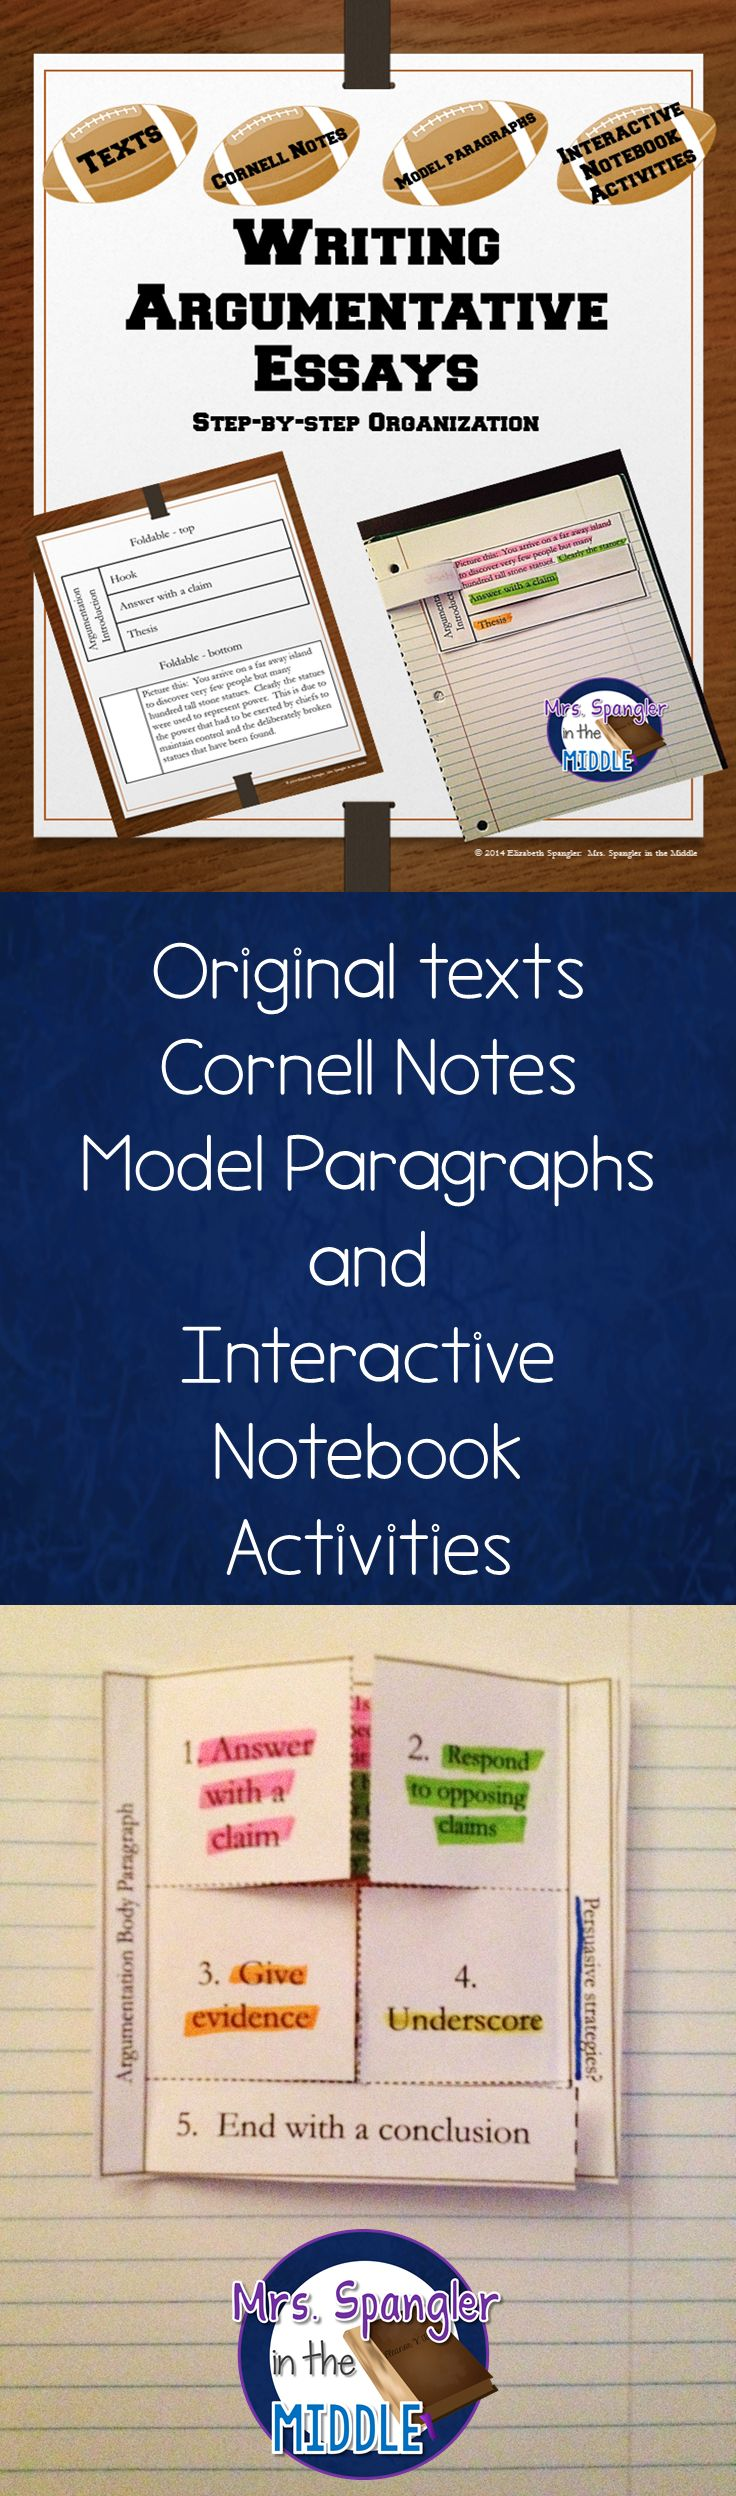 17 best images about cornell notes structured step by step instruction to write argumentative essays two texts